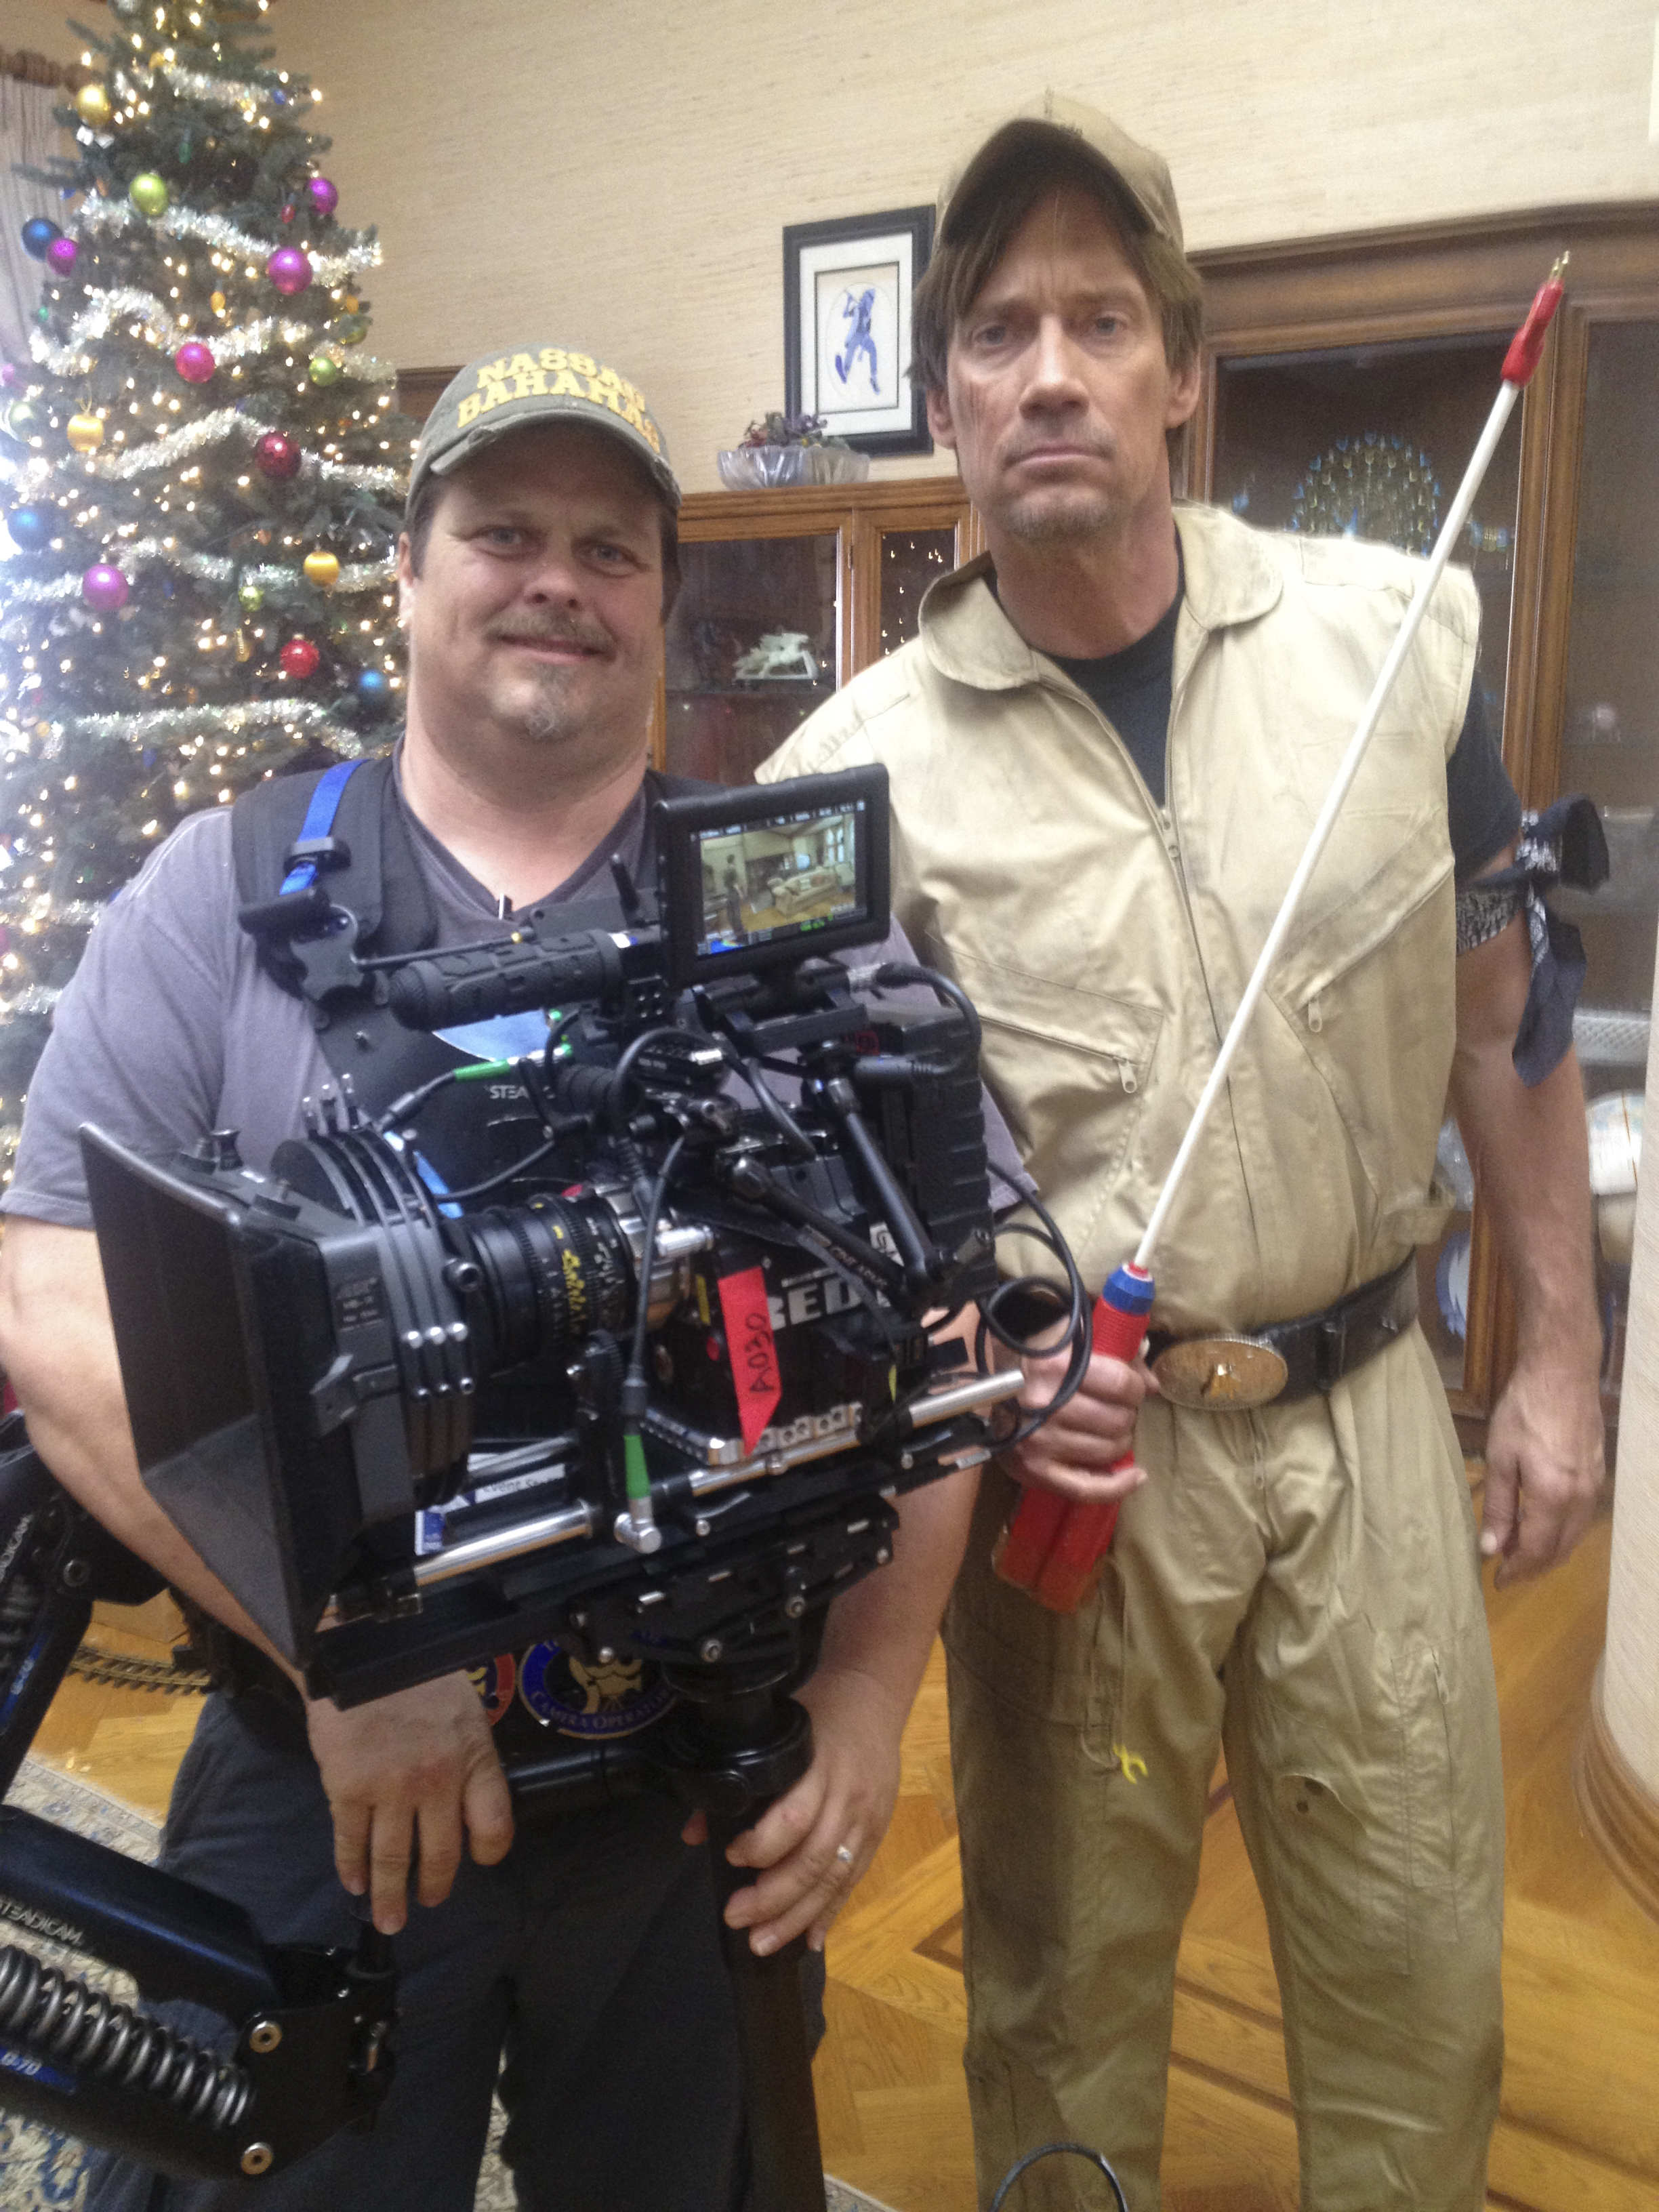 Kevin Sorbo and I.JPG